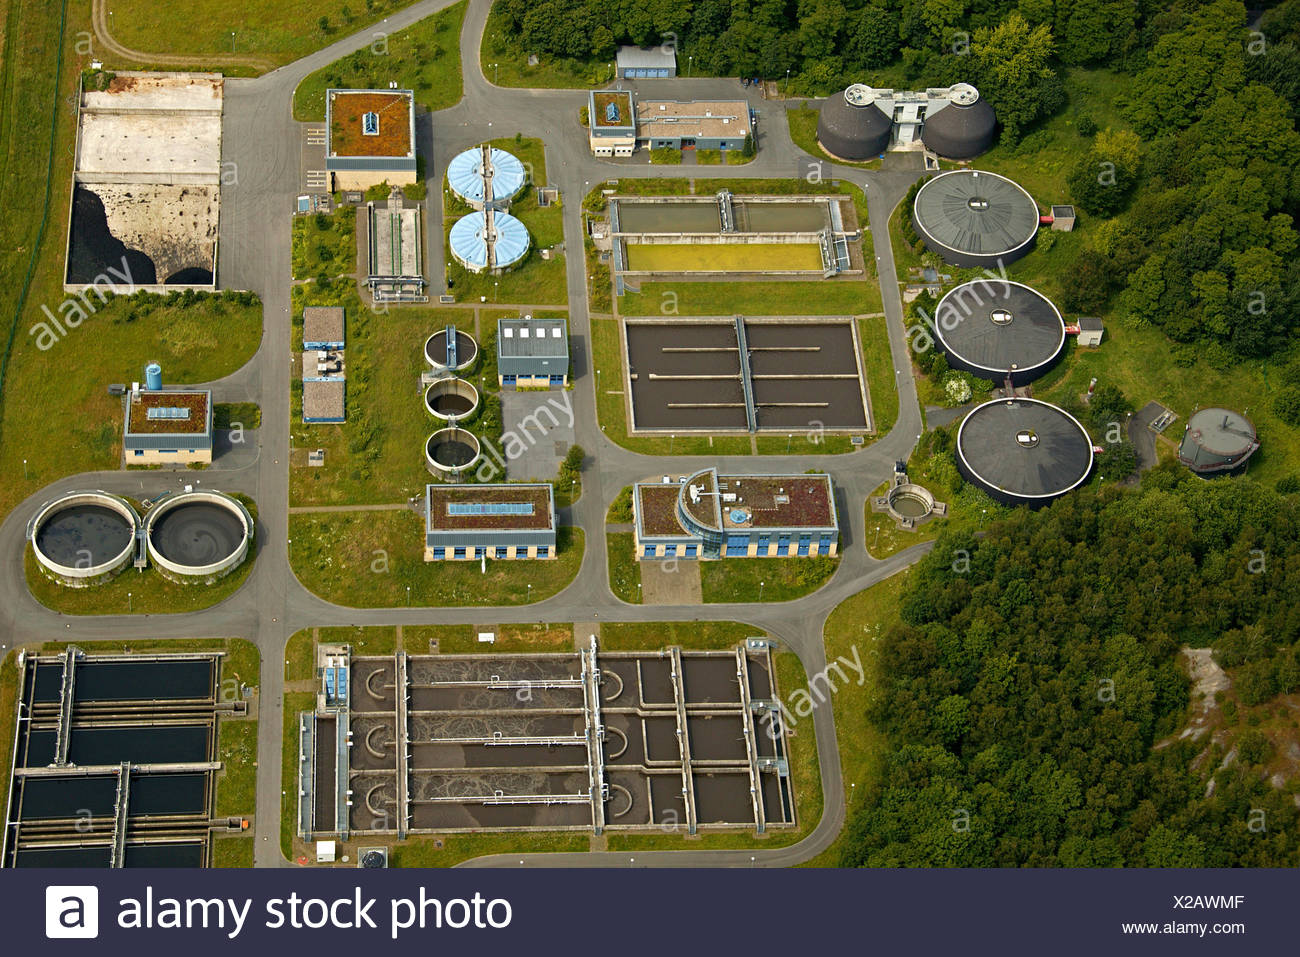 Aerial photo, sewage treatment plant, Dorsten, Lippeverband, Ruhrgebiet, North Rhine-Westphalia, Germany, Europe - Stock Image